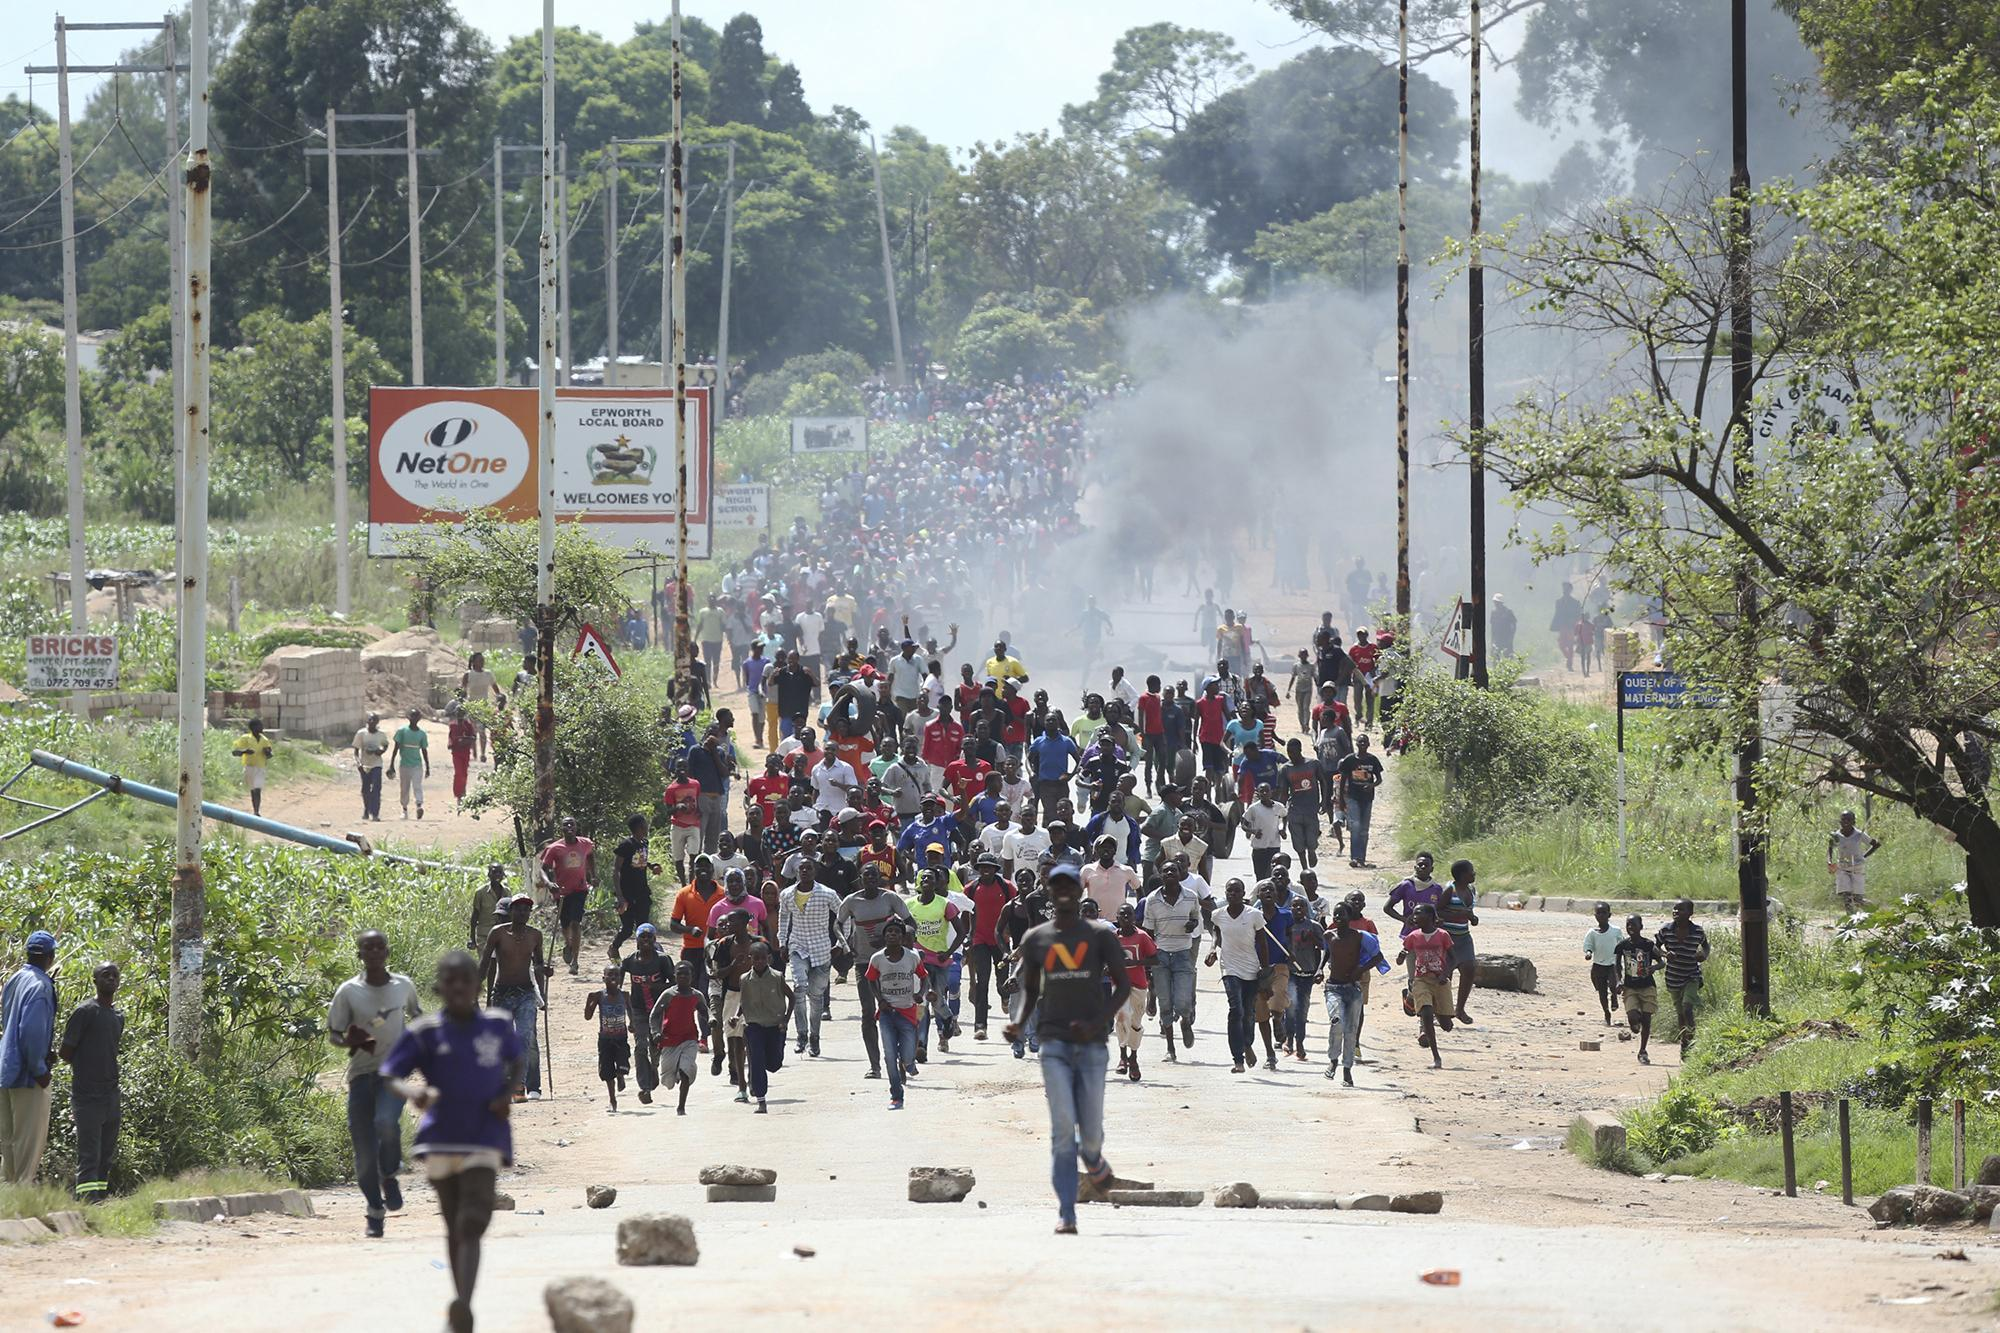 Demonstrators in Harare, Zimbabwe, earlier this month